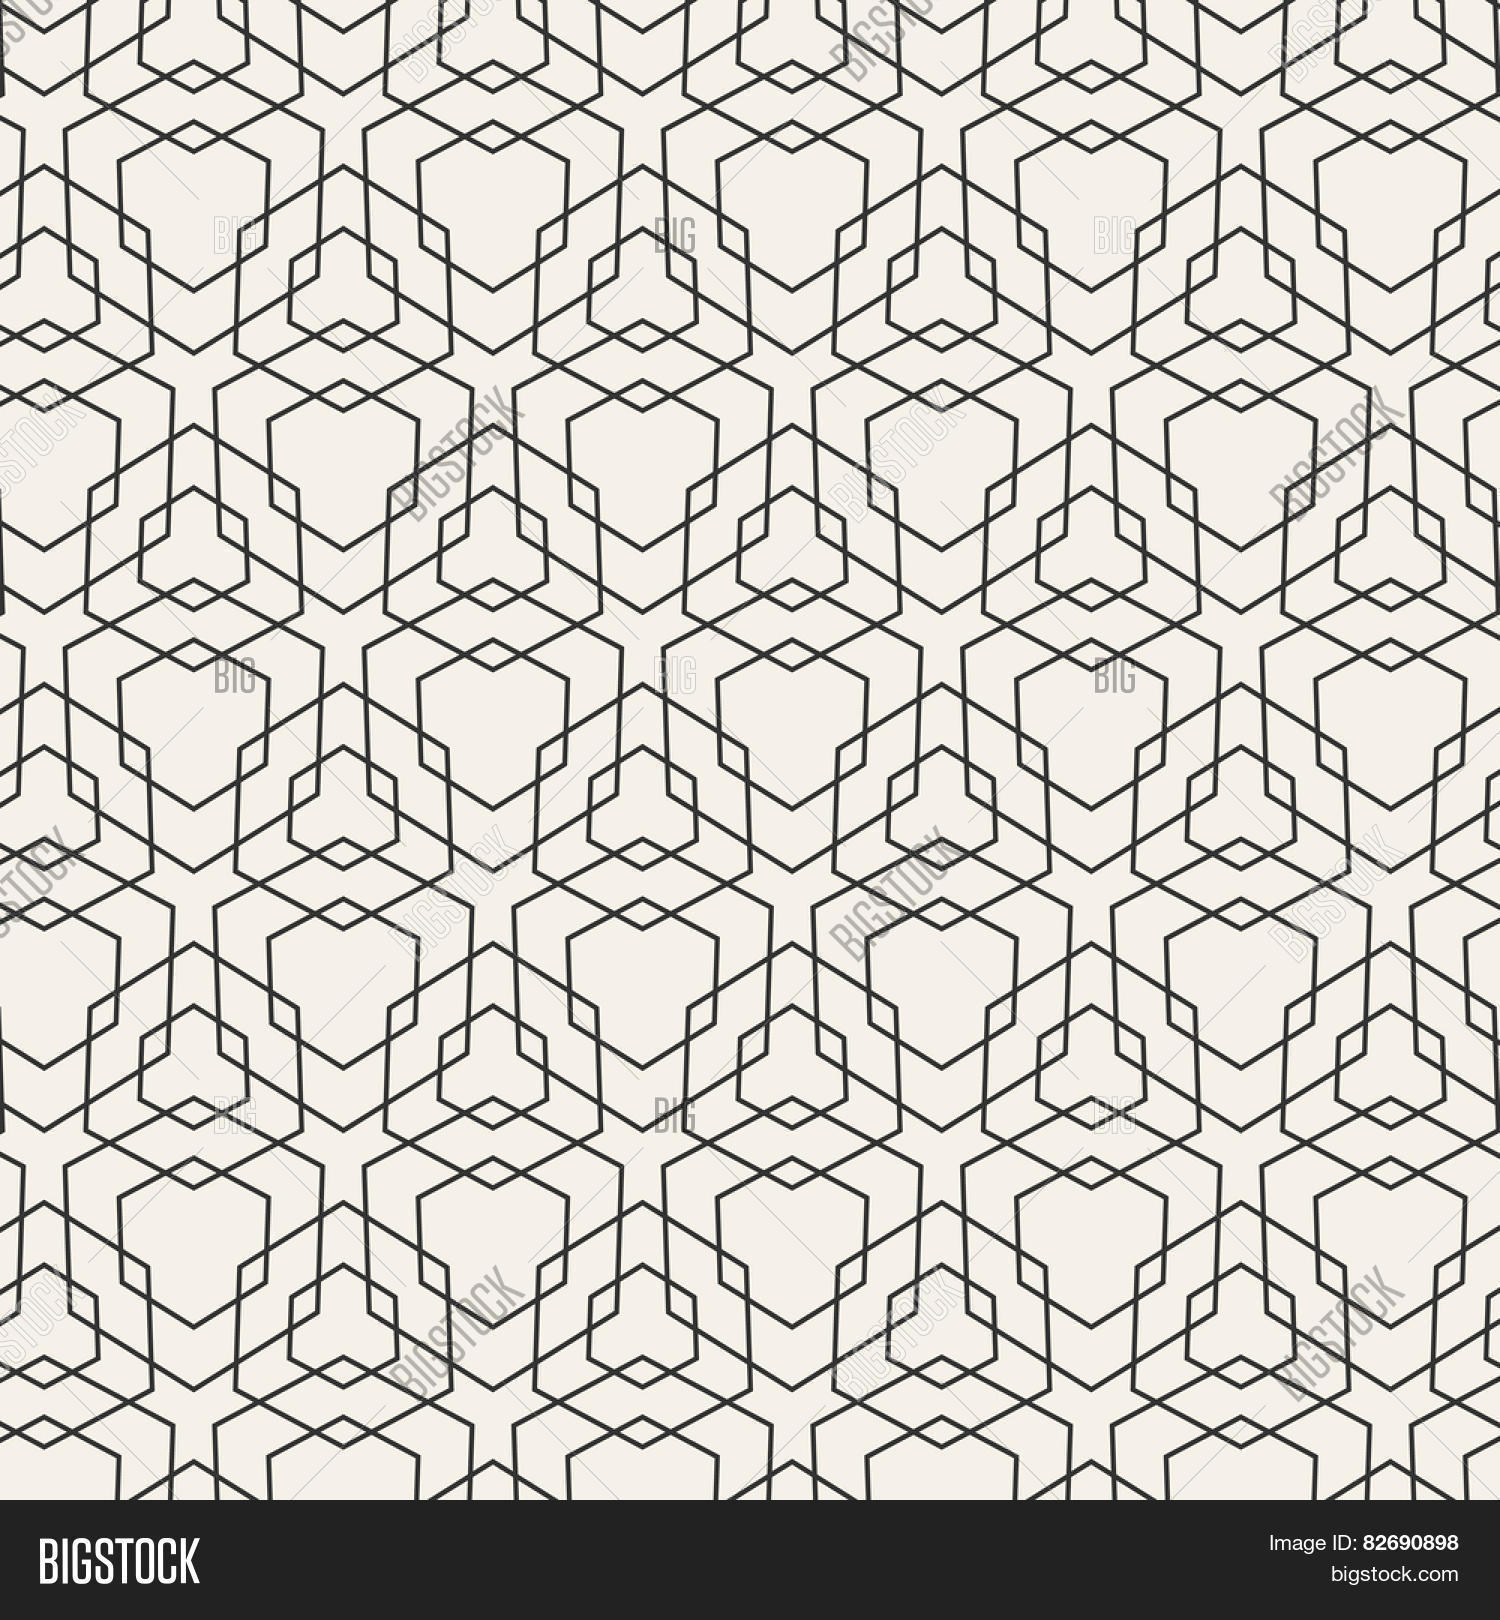 Black And White Geometric Patterns And Designs